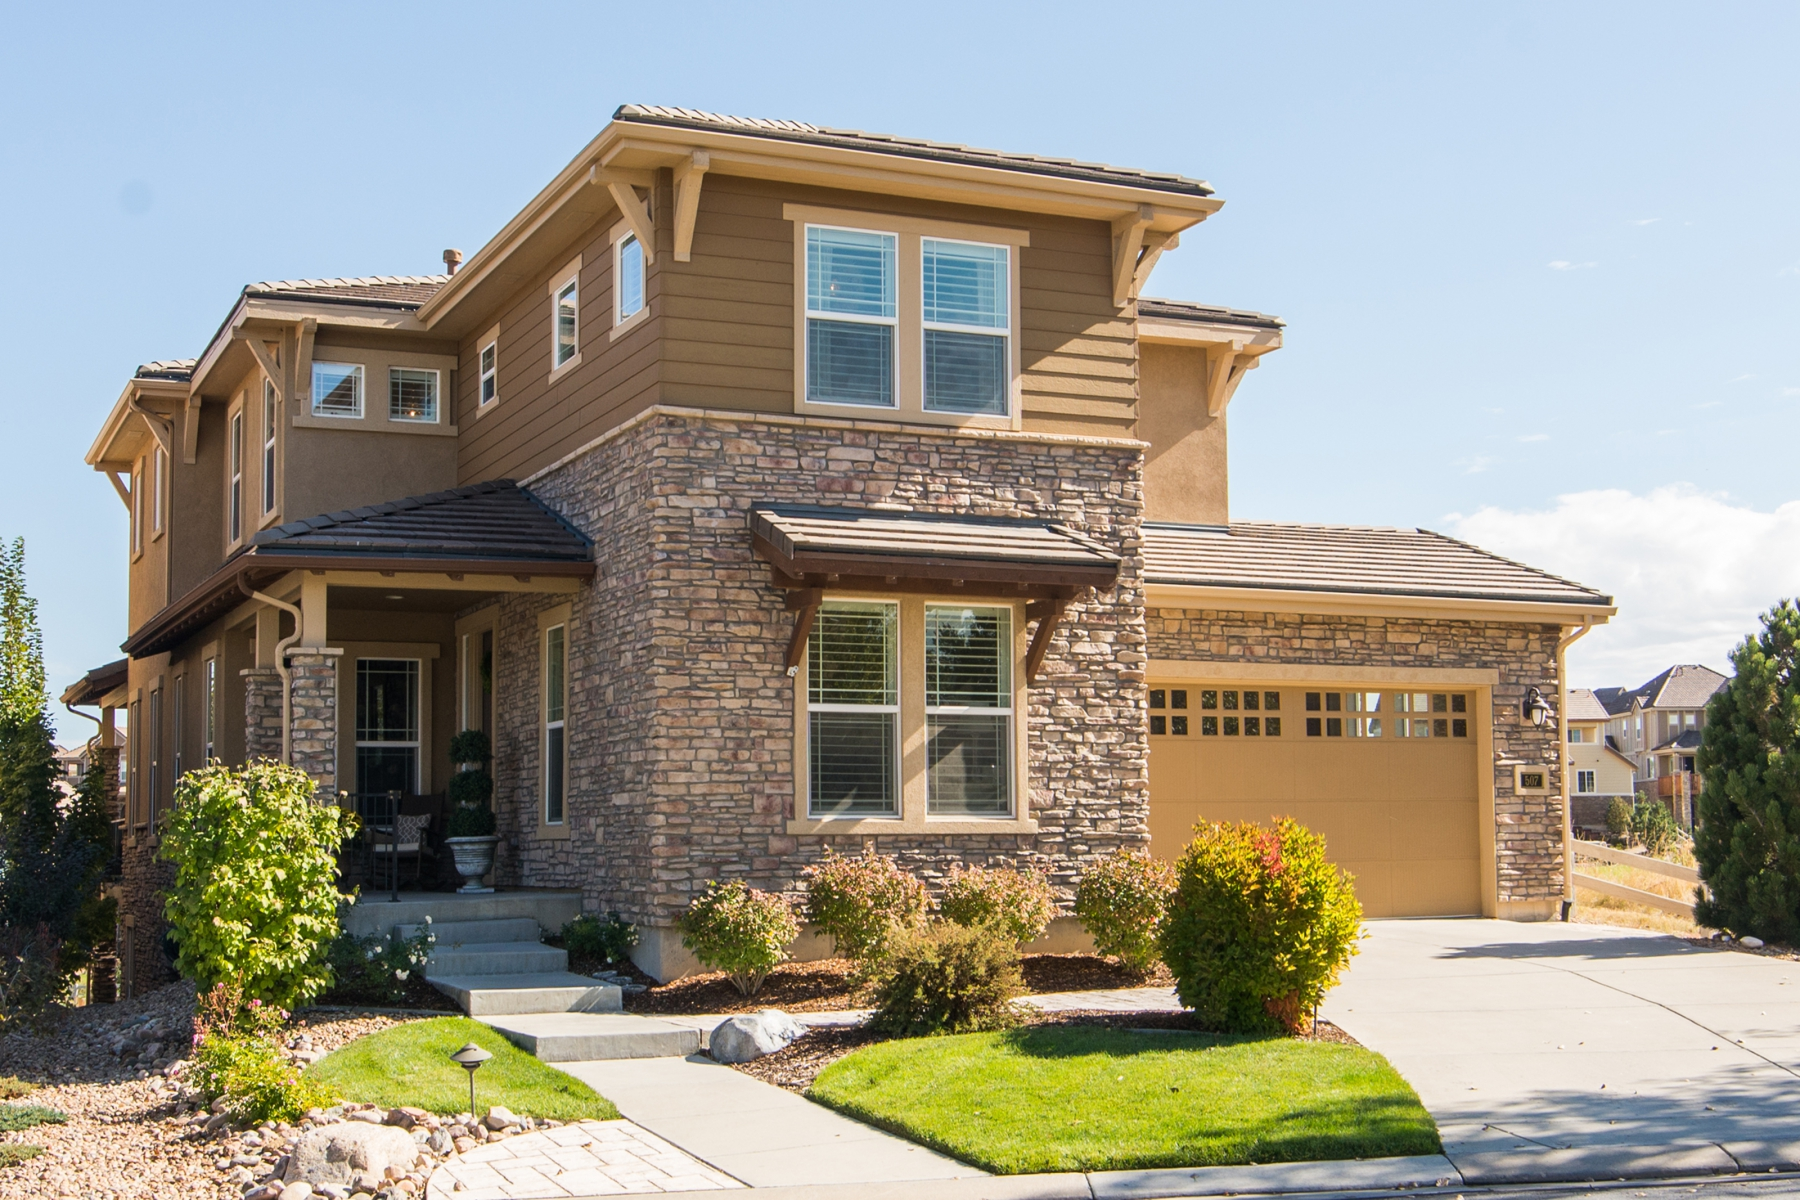 Single Family Home for Sale at Welcome Home! 507 Maplehurst Dr Highlands Ranch, Colorado 80126 United States